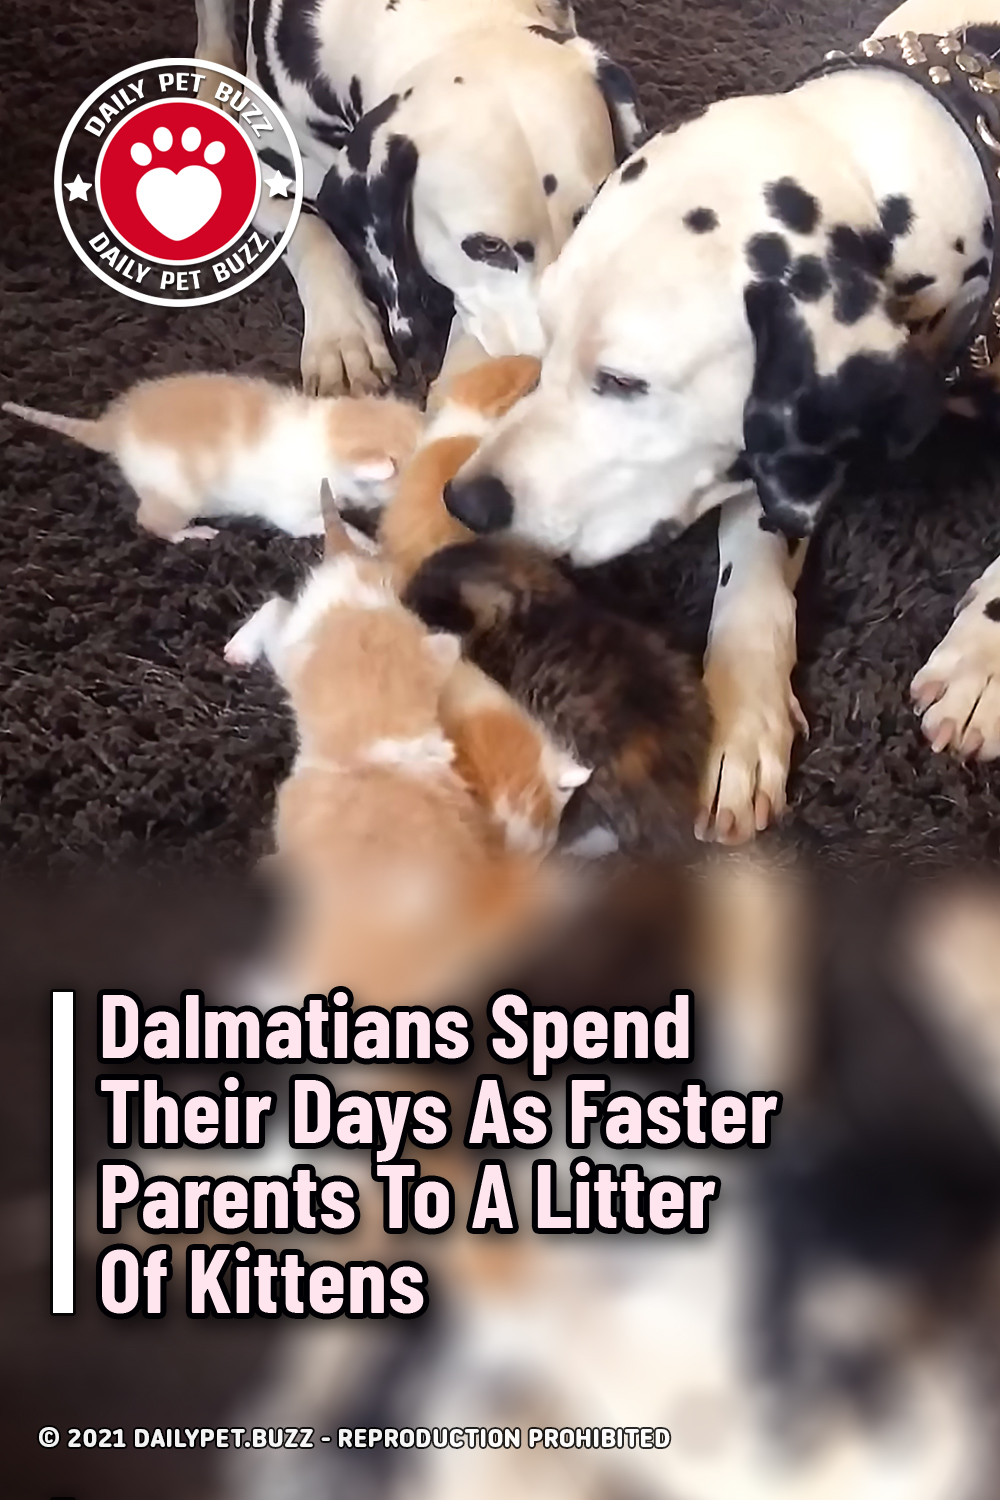 Dalmatians Spend Their Days As Faster Parents To A Litter Of Kittens